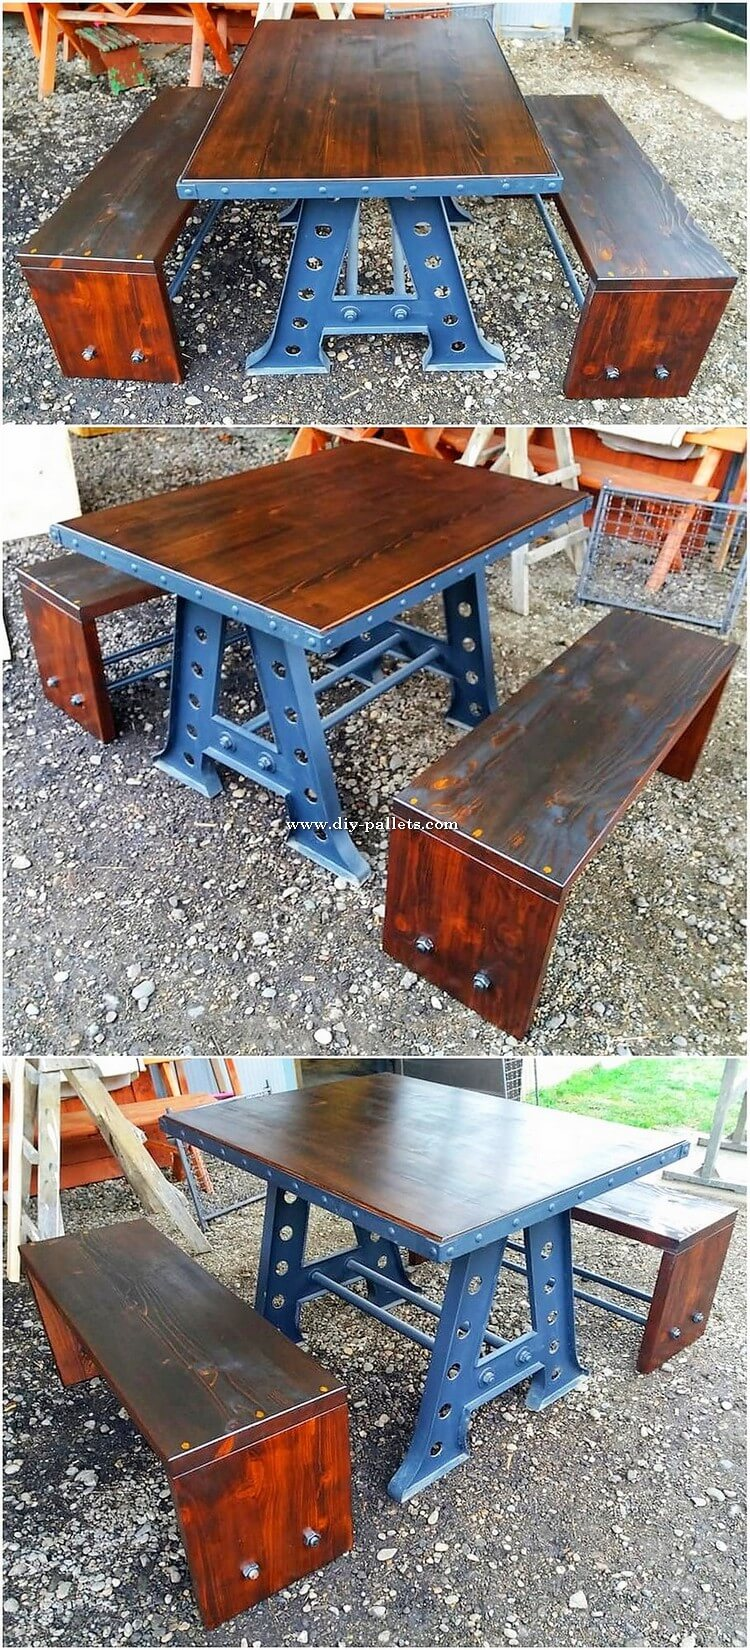 Wooden Pallet Benches and Table